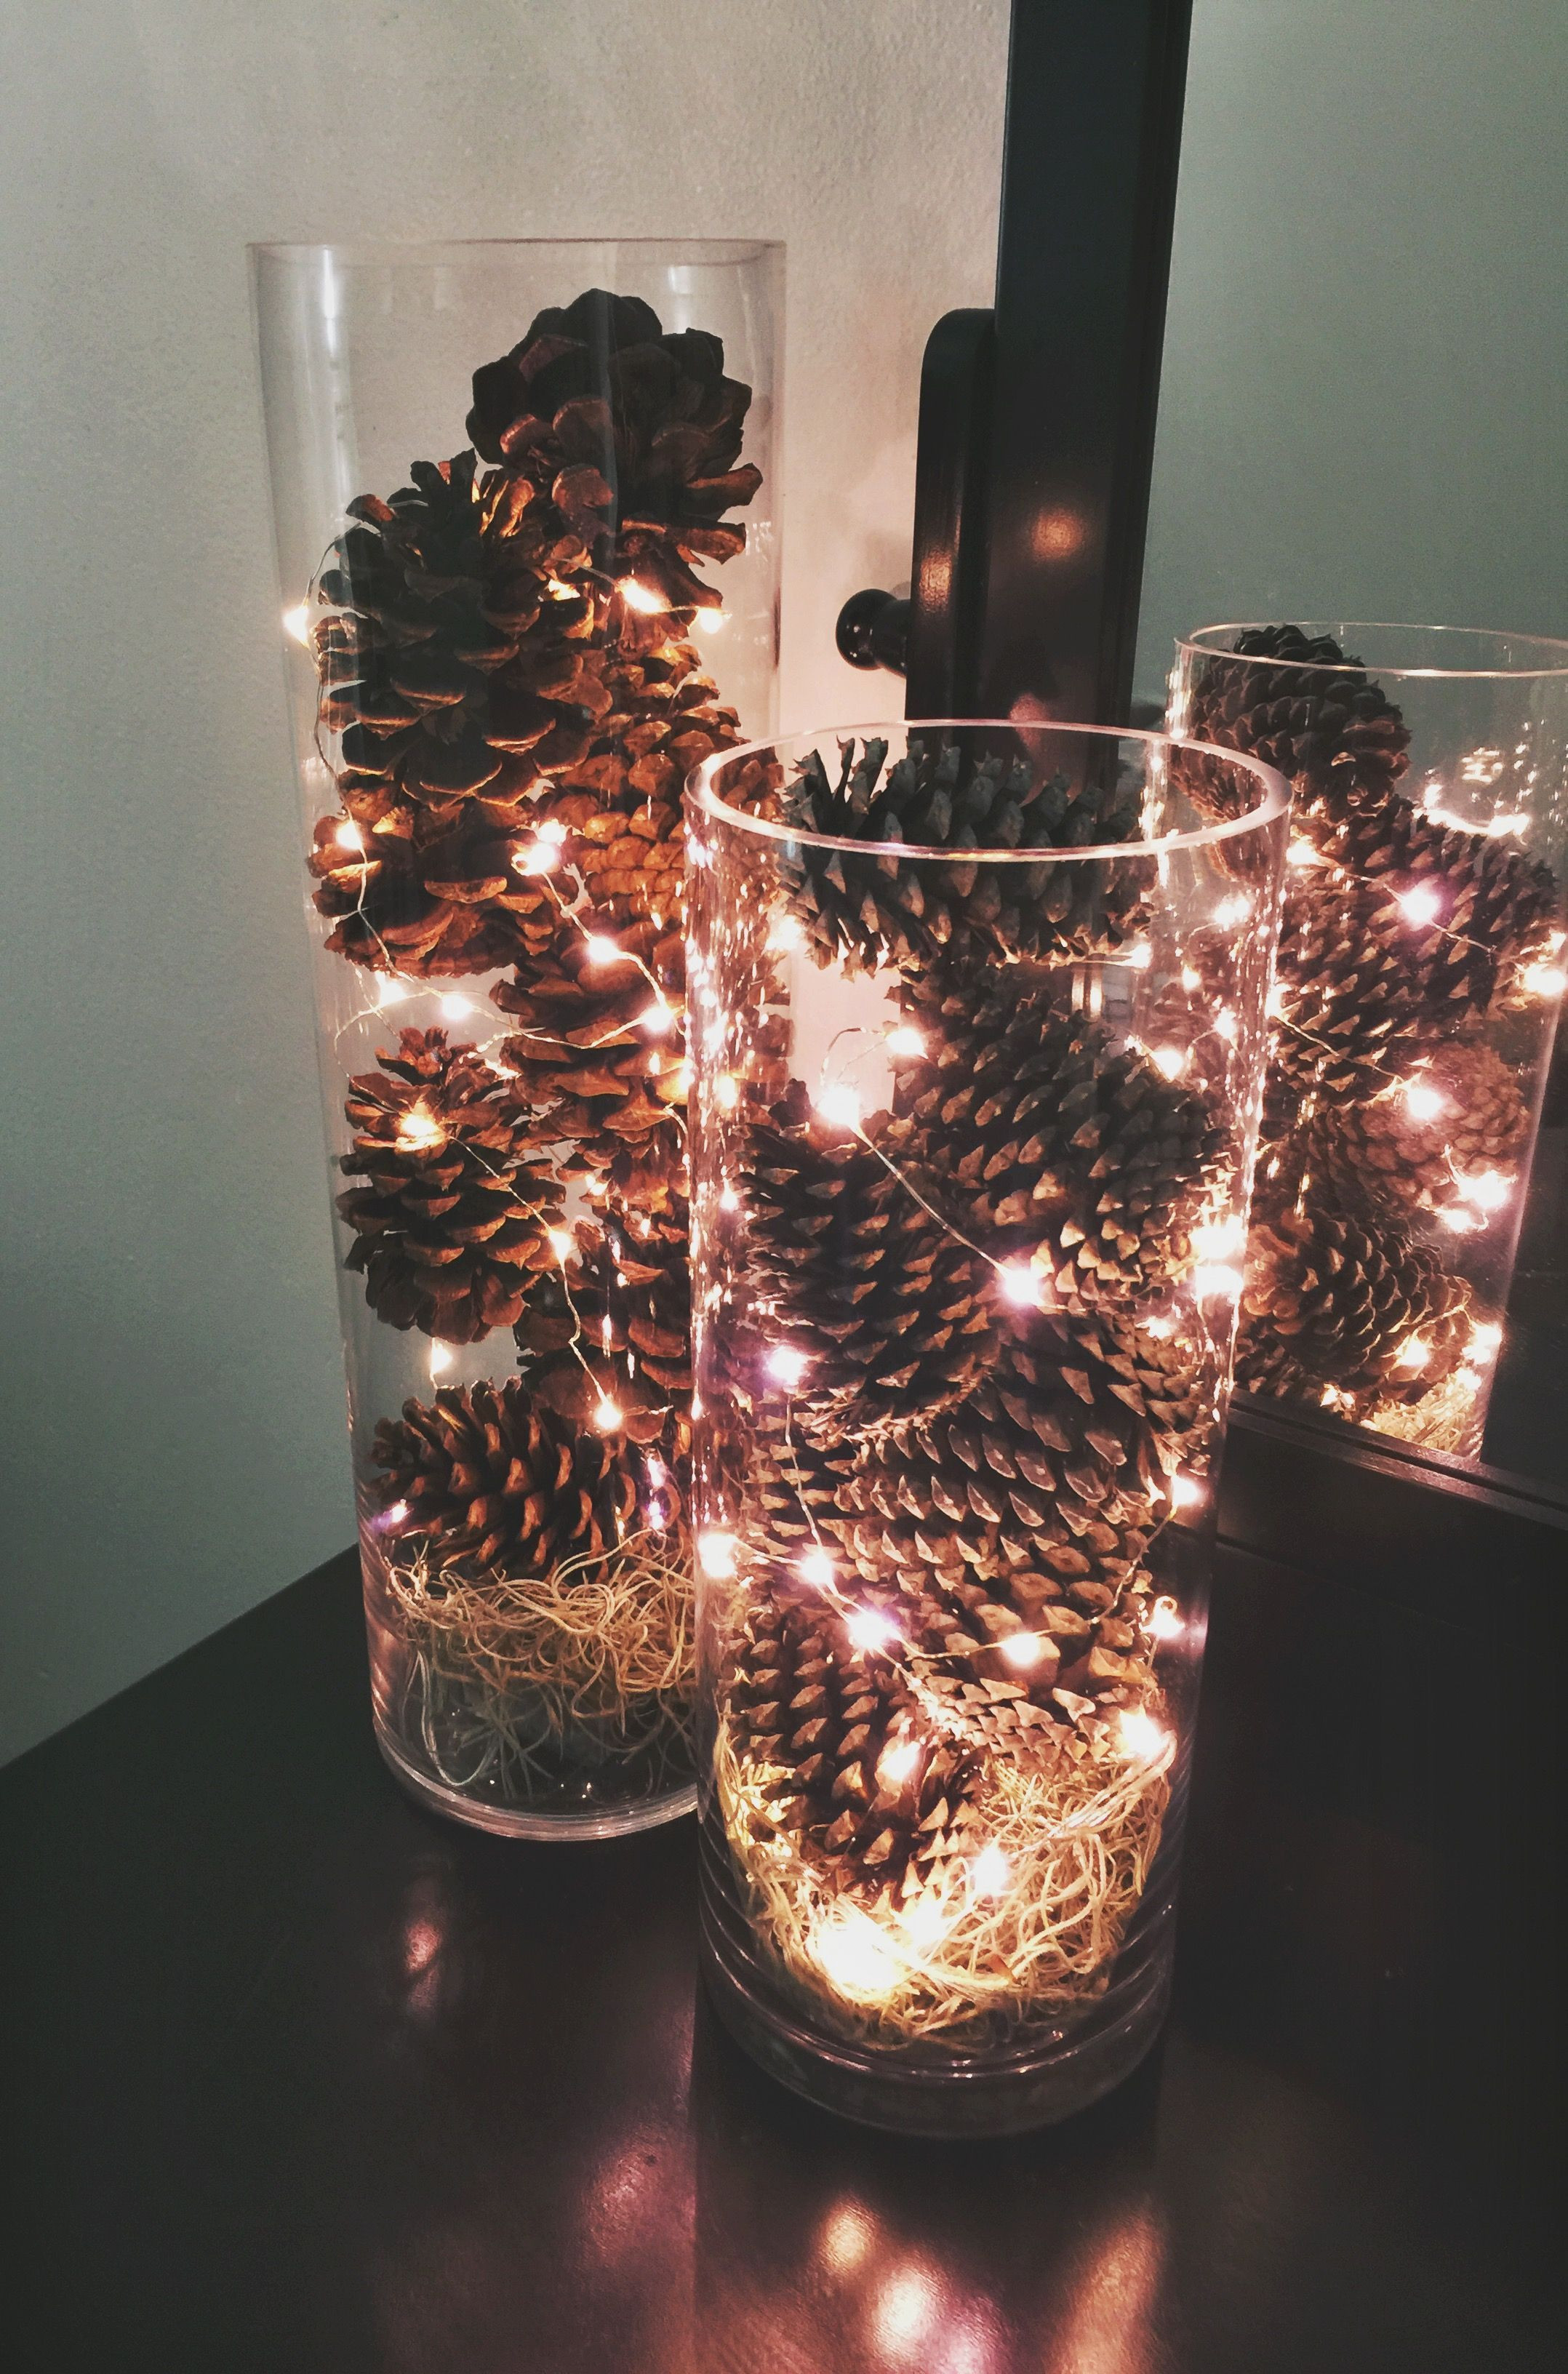 3 Feet Tall Vases Of Tall Vase with Sticks Awesome Simple and Inexpensive December Inside Tall Vase with Sticks Awesome Simple and Inexpensive December Centerpieces Pinecones Spanish